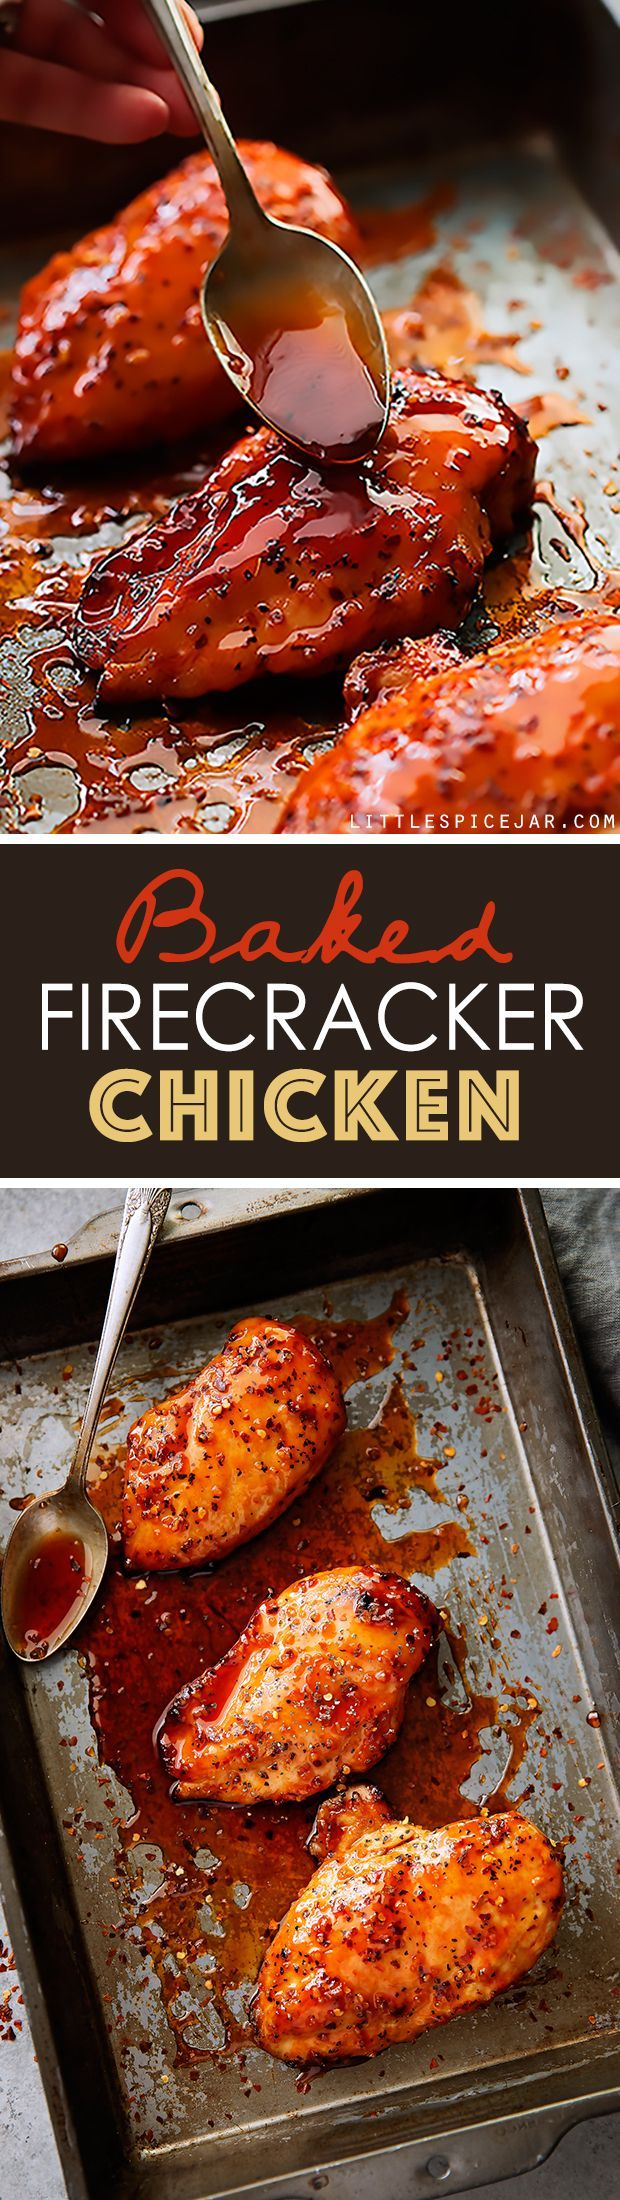 Baked Firecracker Chicken -***Frank's Buffalo Sauce works fine but we like (in order of heat and intense flavor) Tabasco, Sriracha or especially my Grandma Li's homemade Sambal Olek even better - Brandon and the Twins